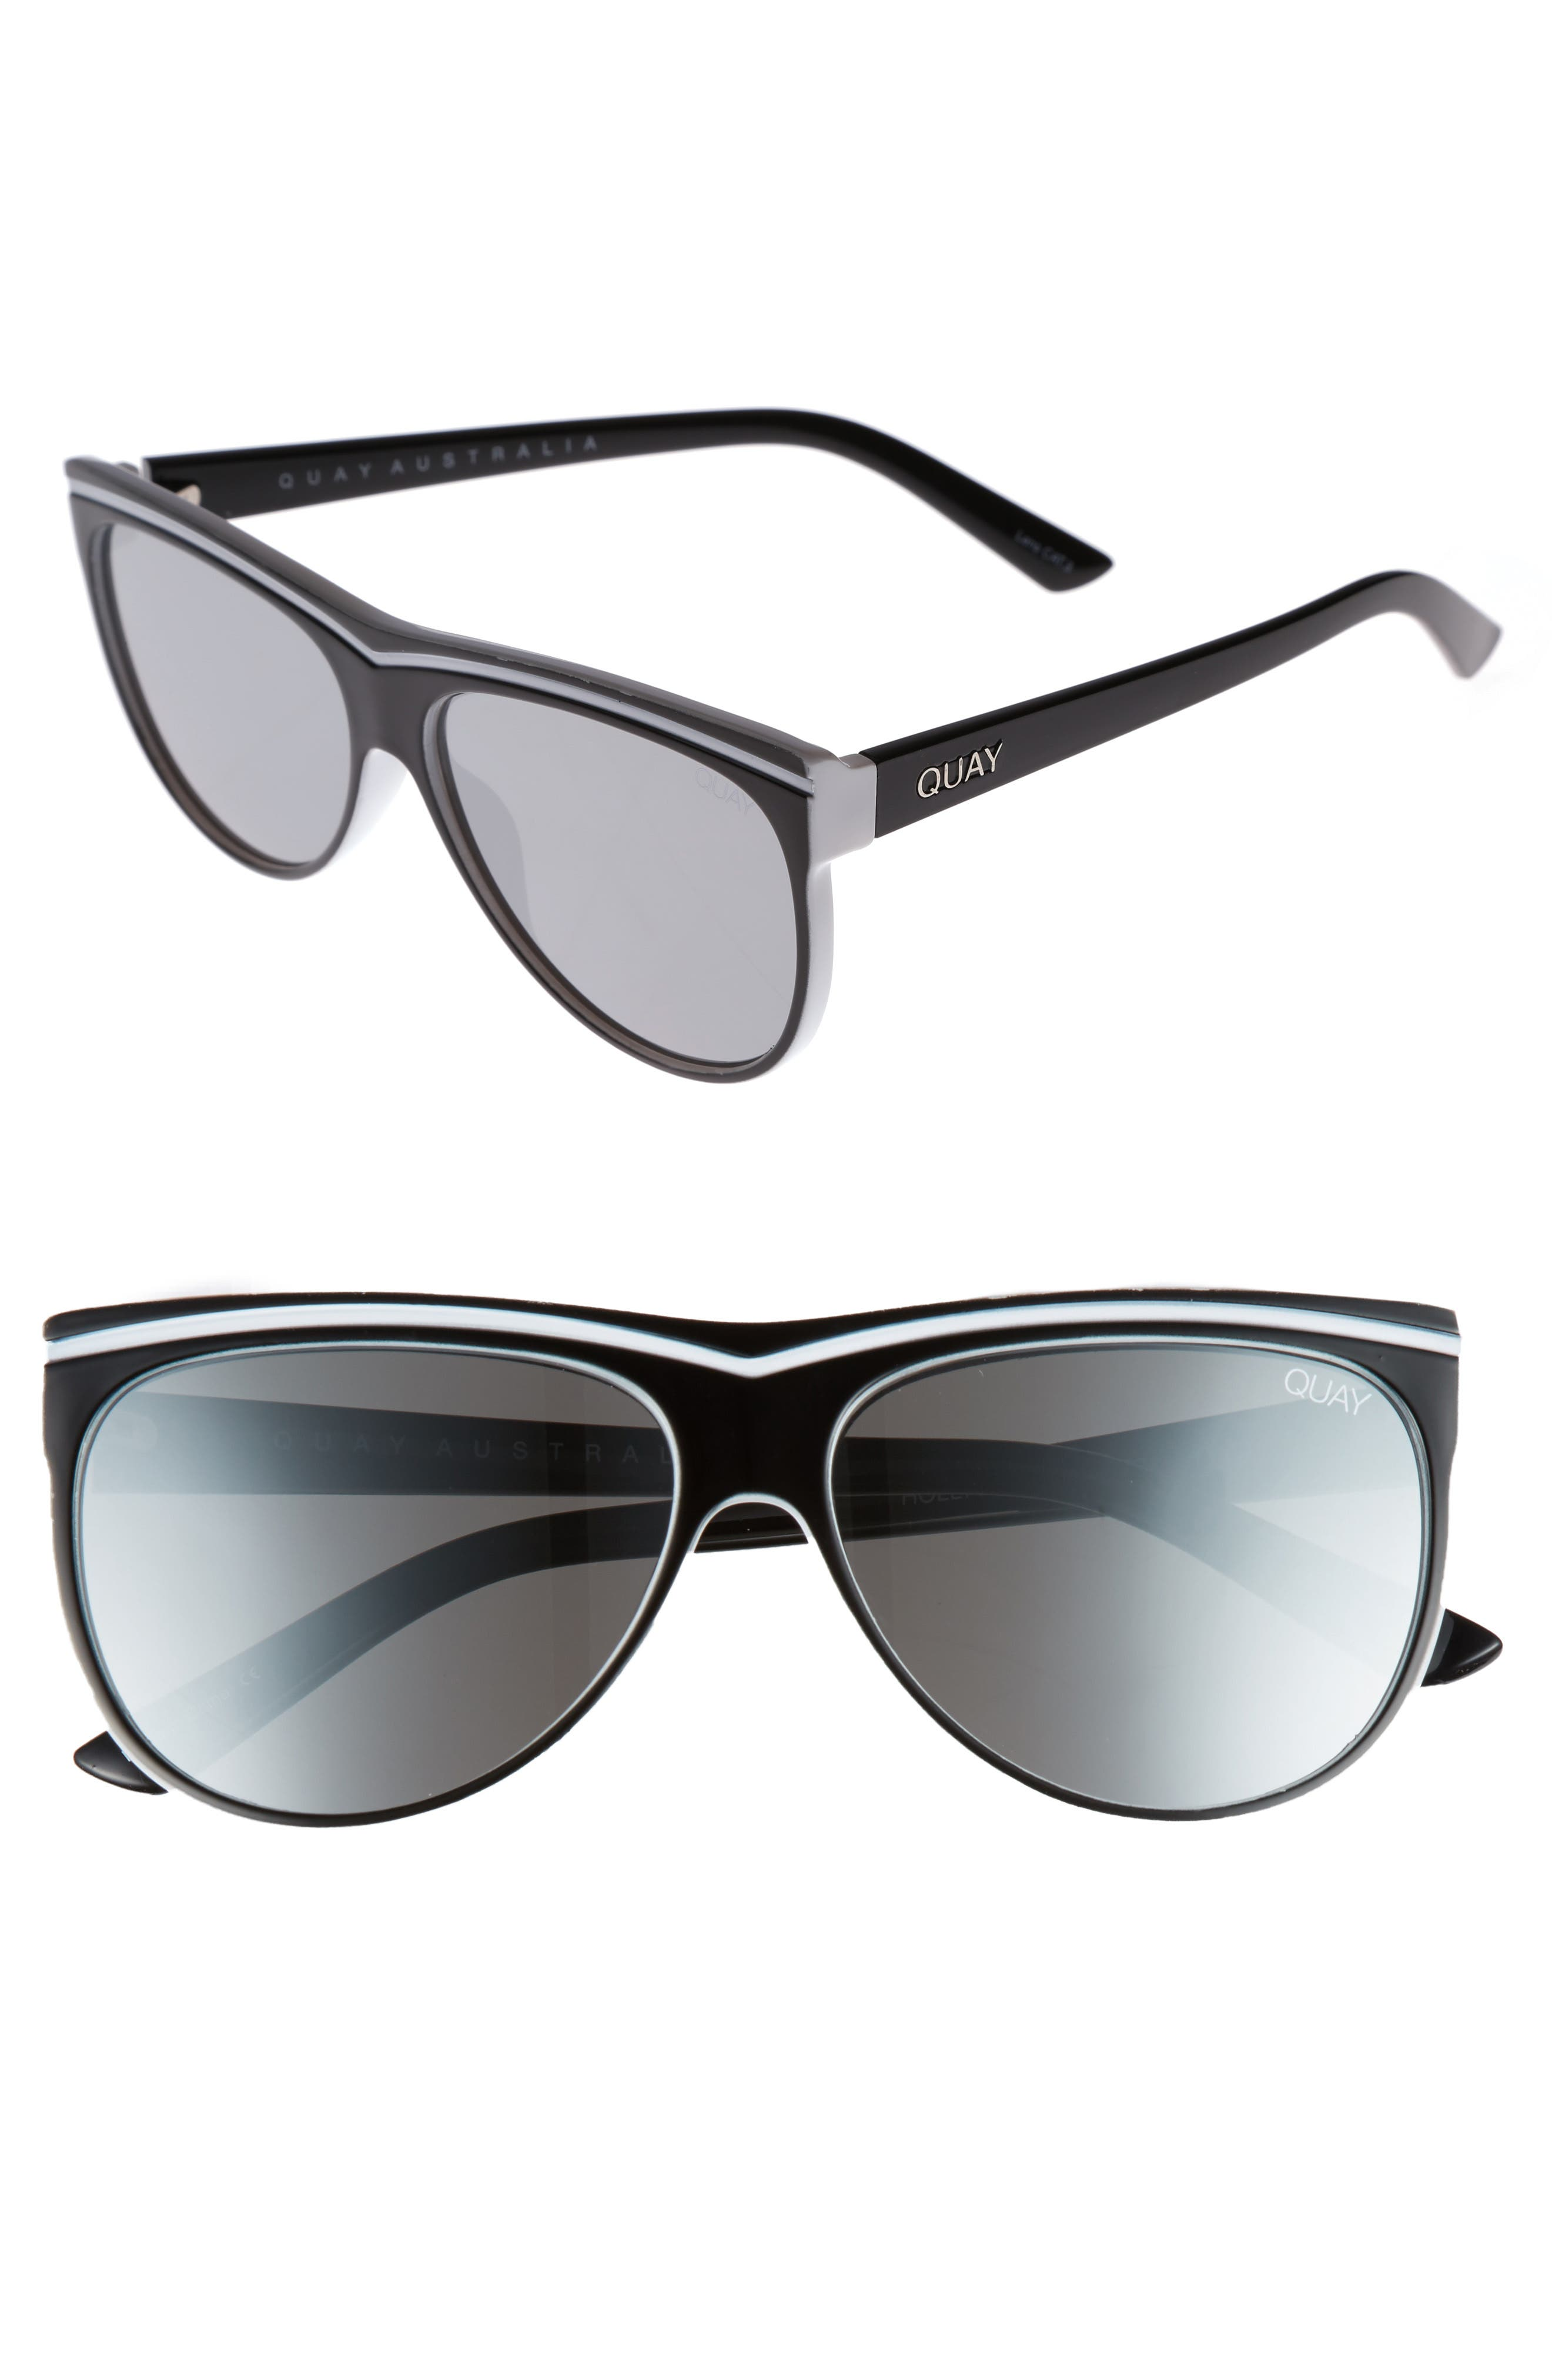 Hollywood Nights 62mm Sunglasses,                         Main,                         color,